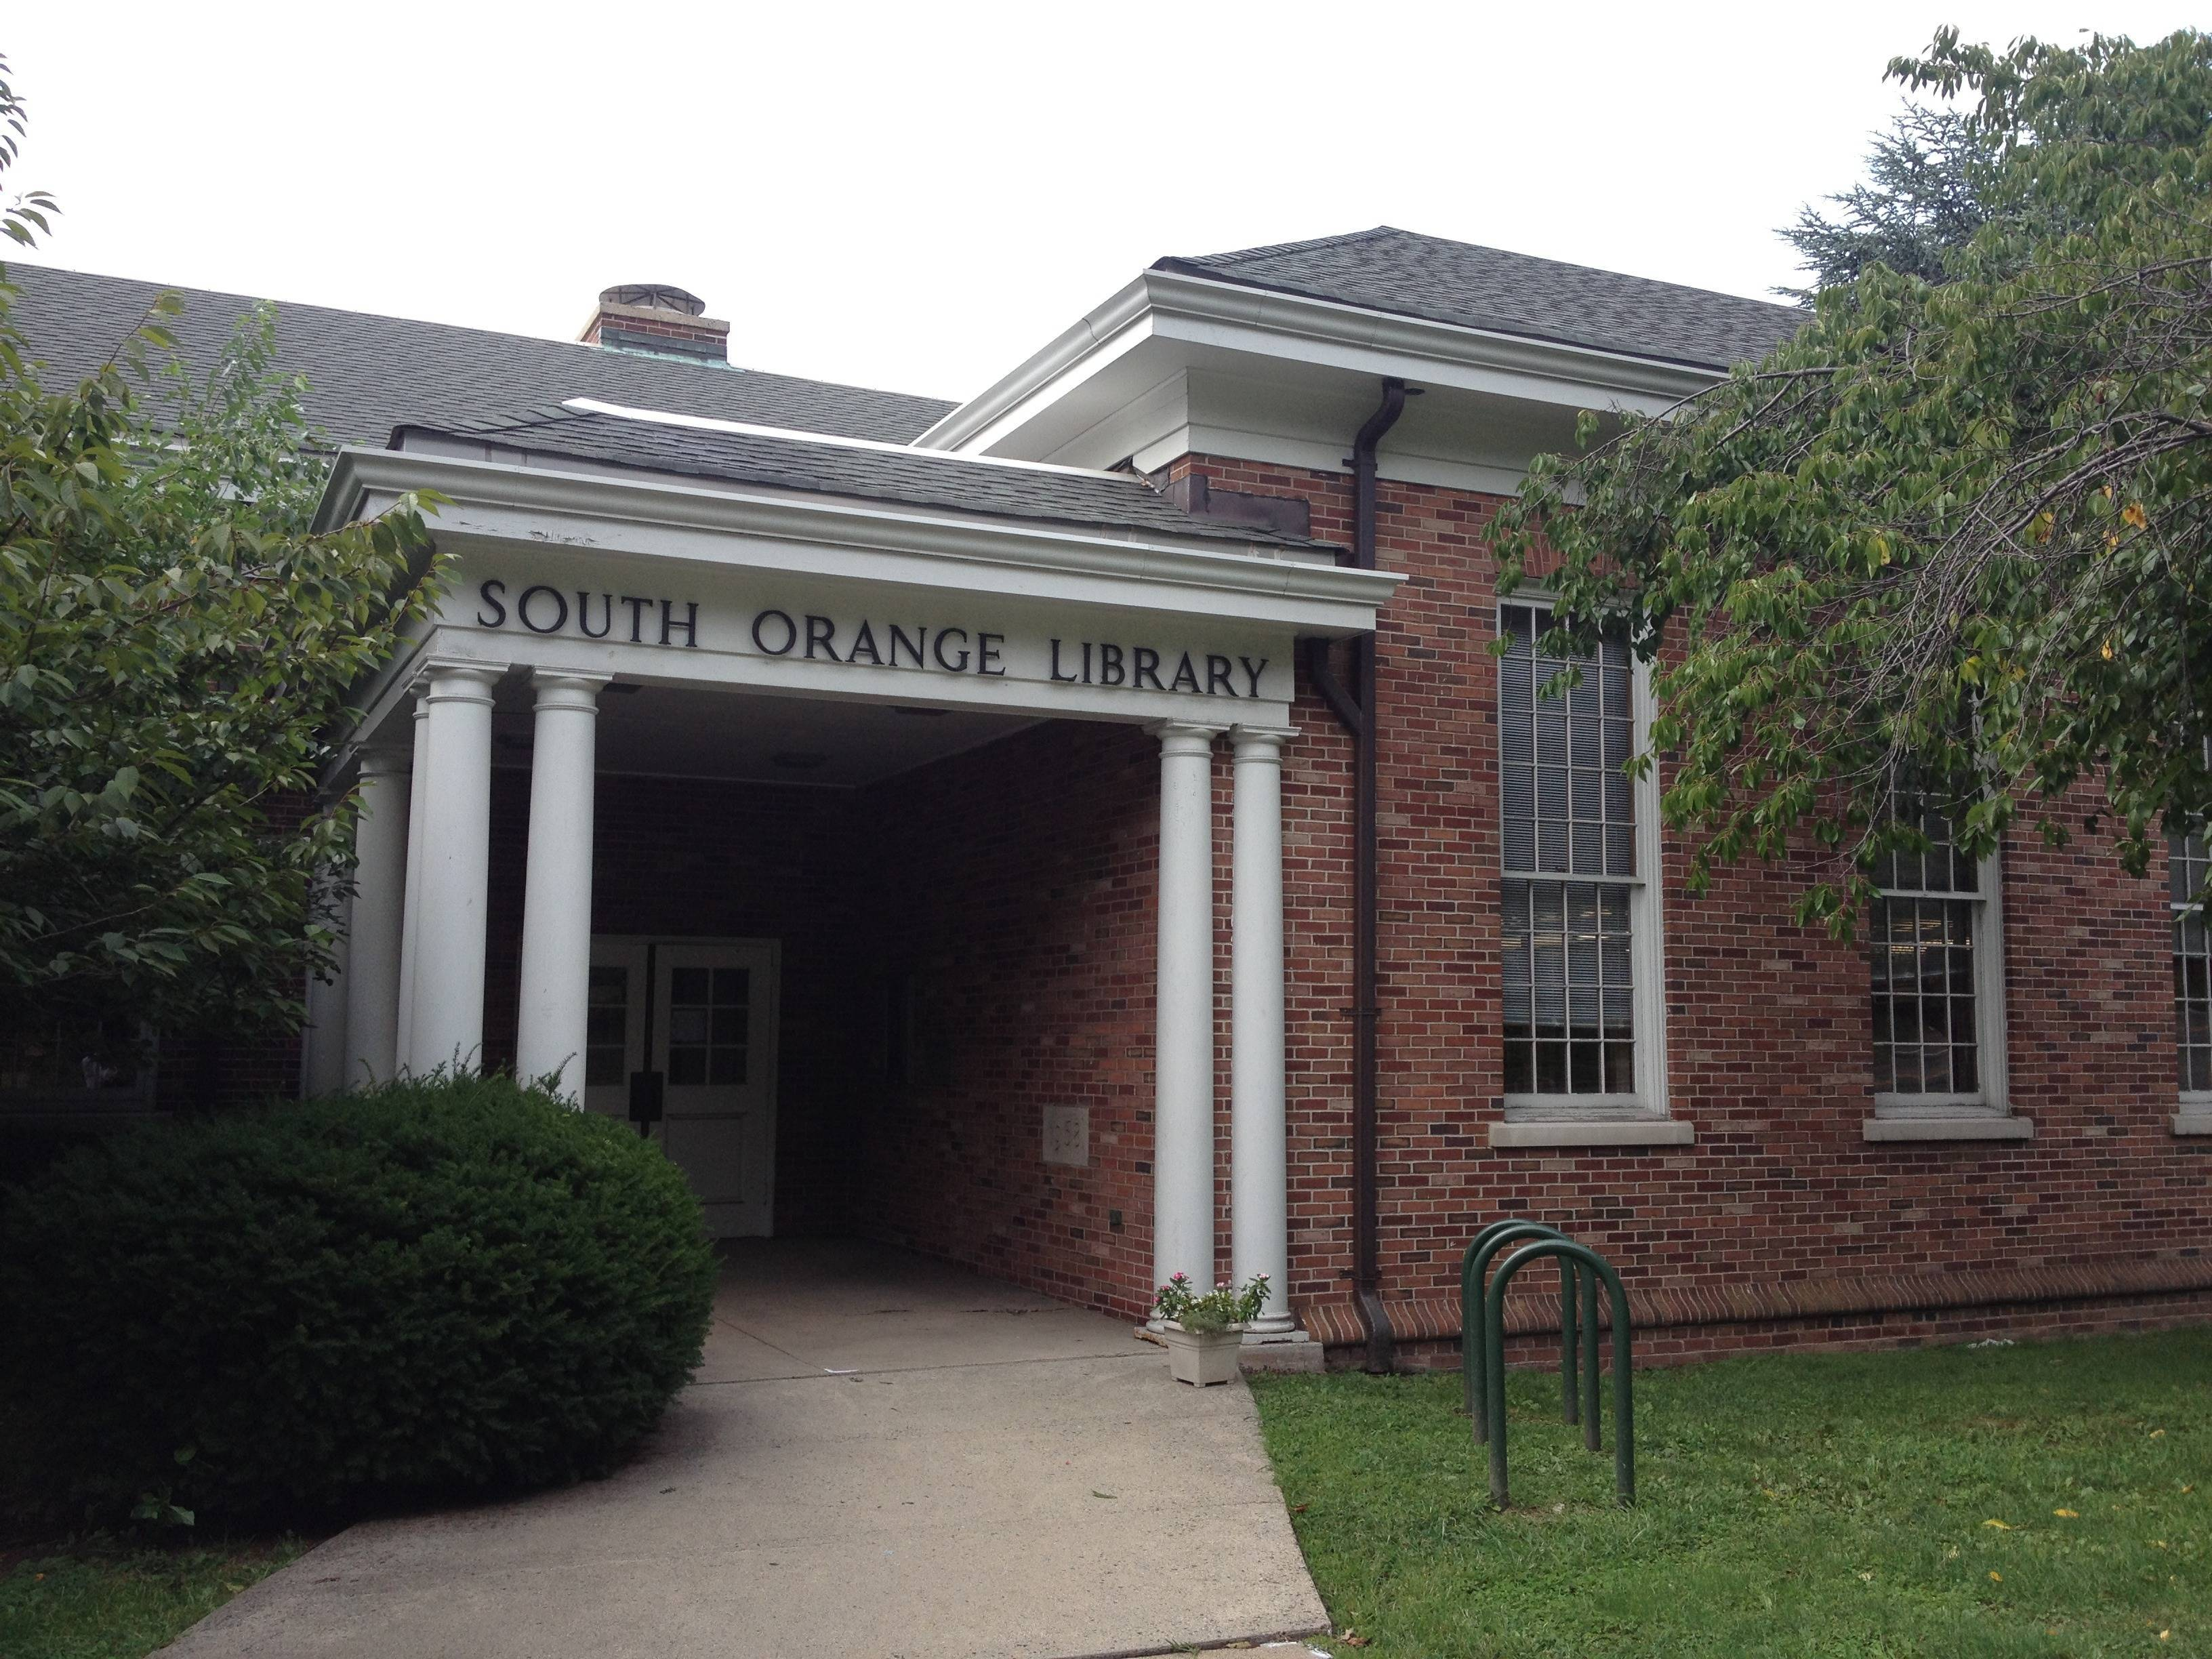 af12a72ee131d5c1803e_South_Orange_Library.JPG